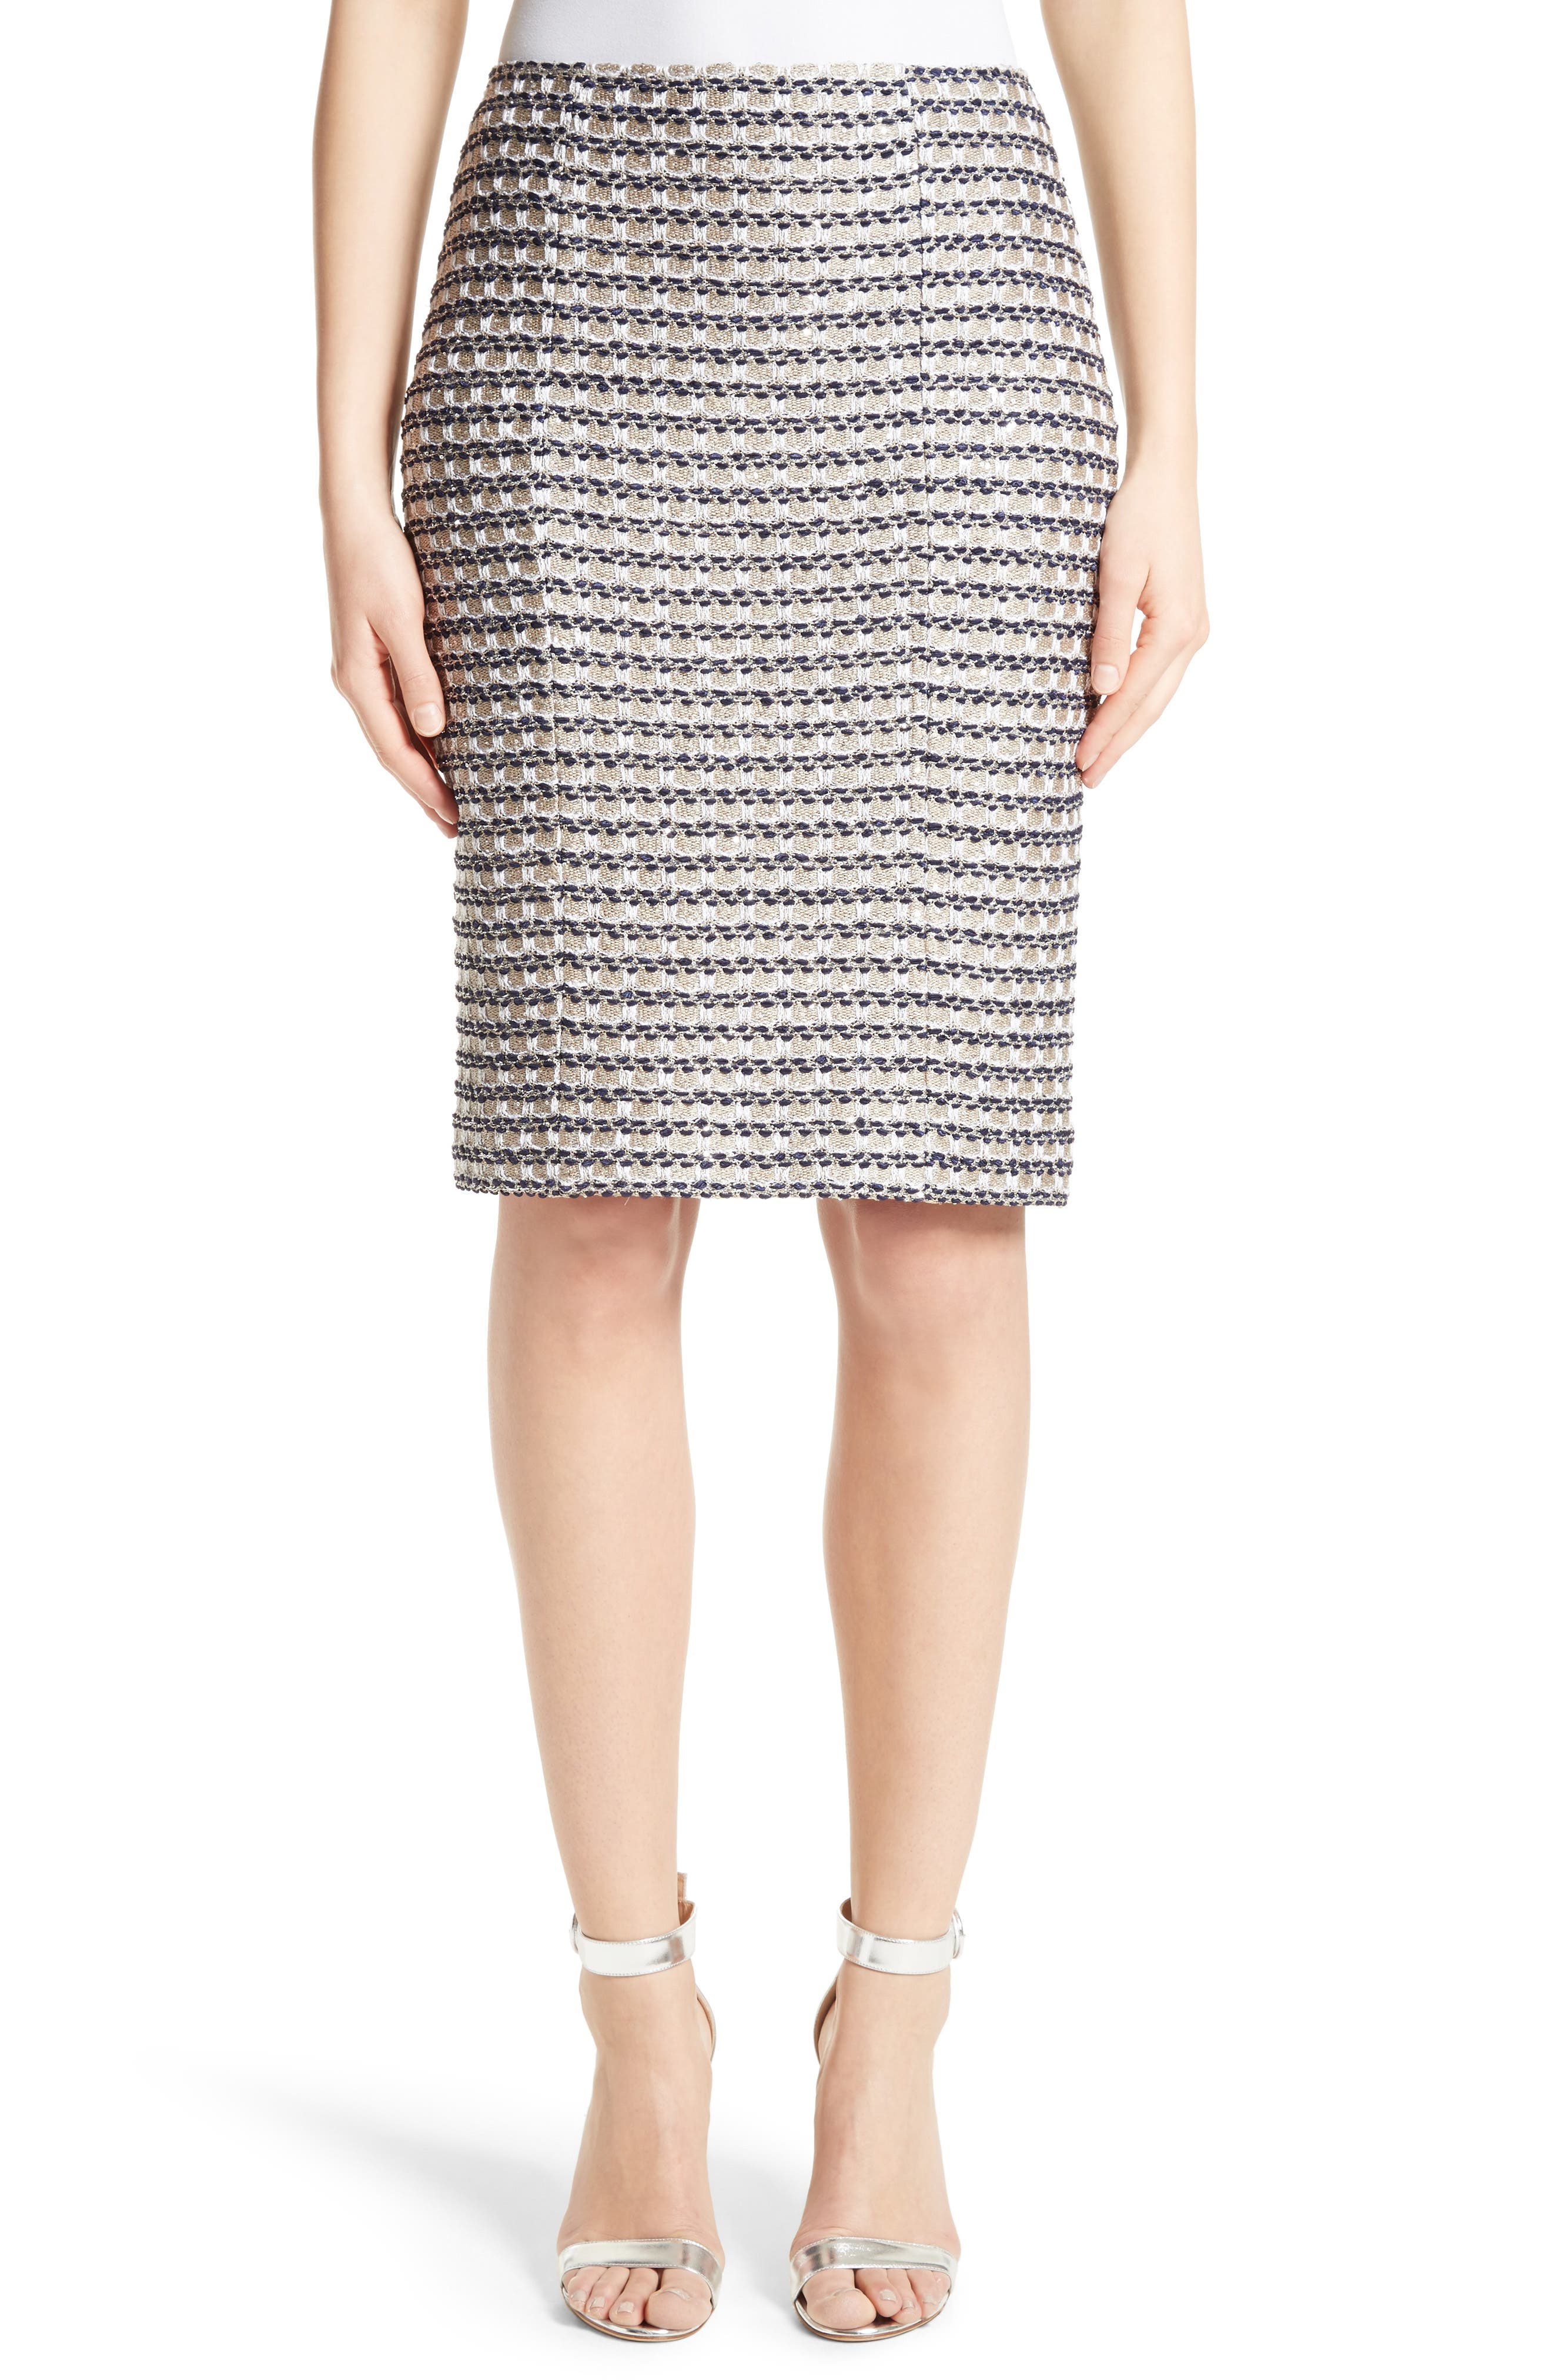 Vany Tweed Knit Pencil Skirt,                             Main thumbnail 1, color,                             040